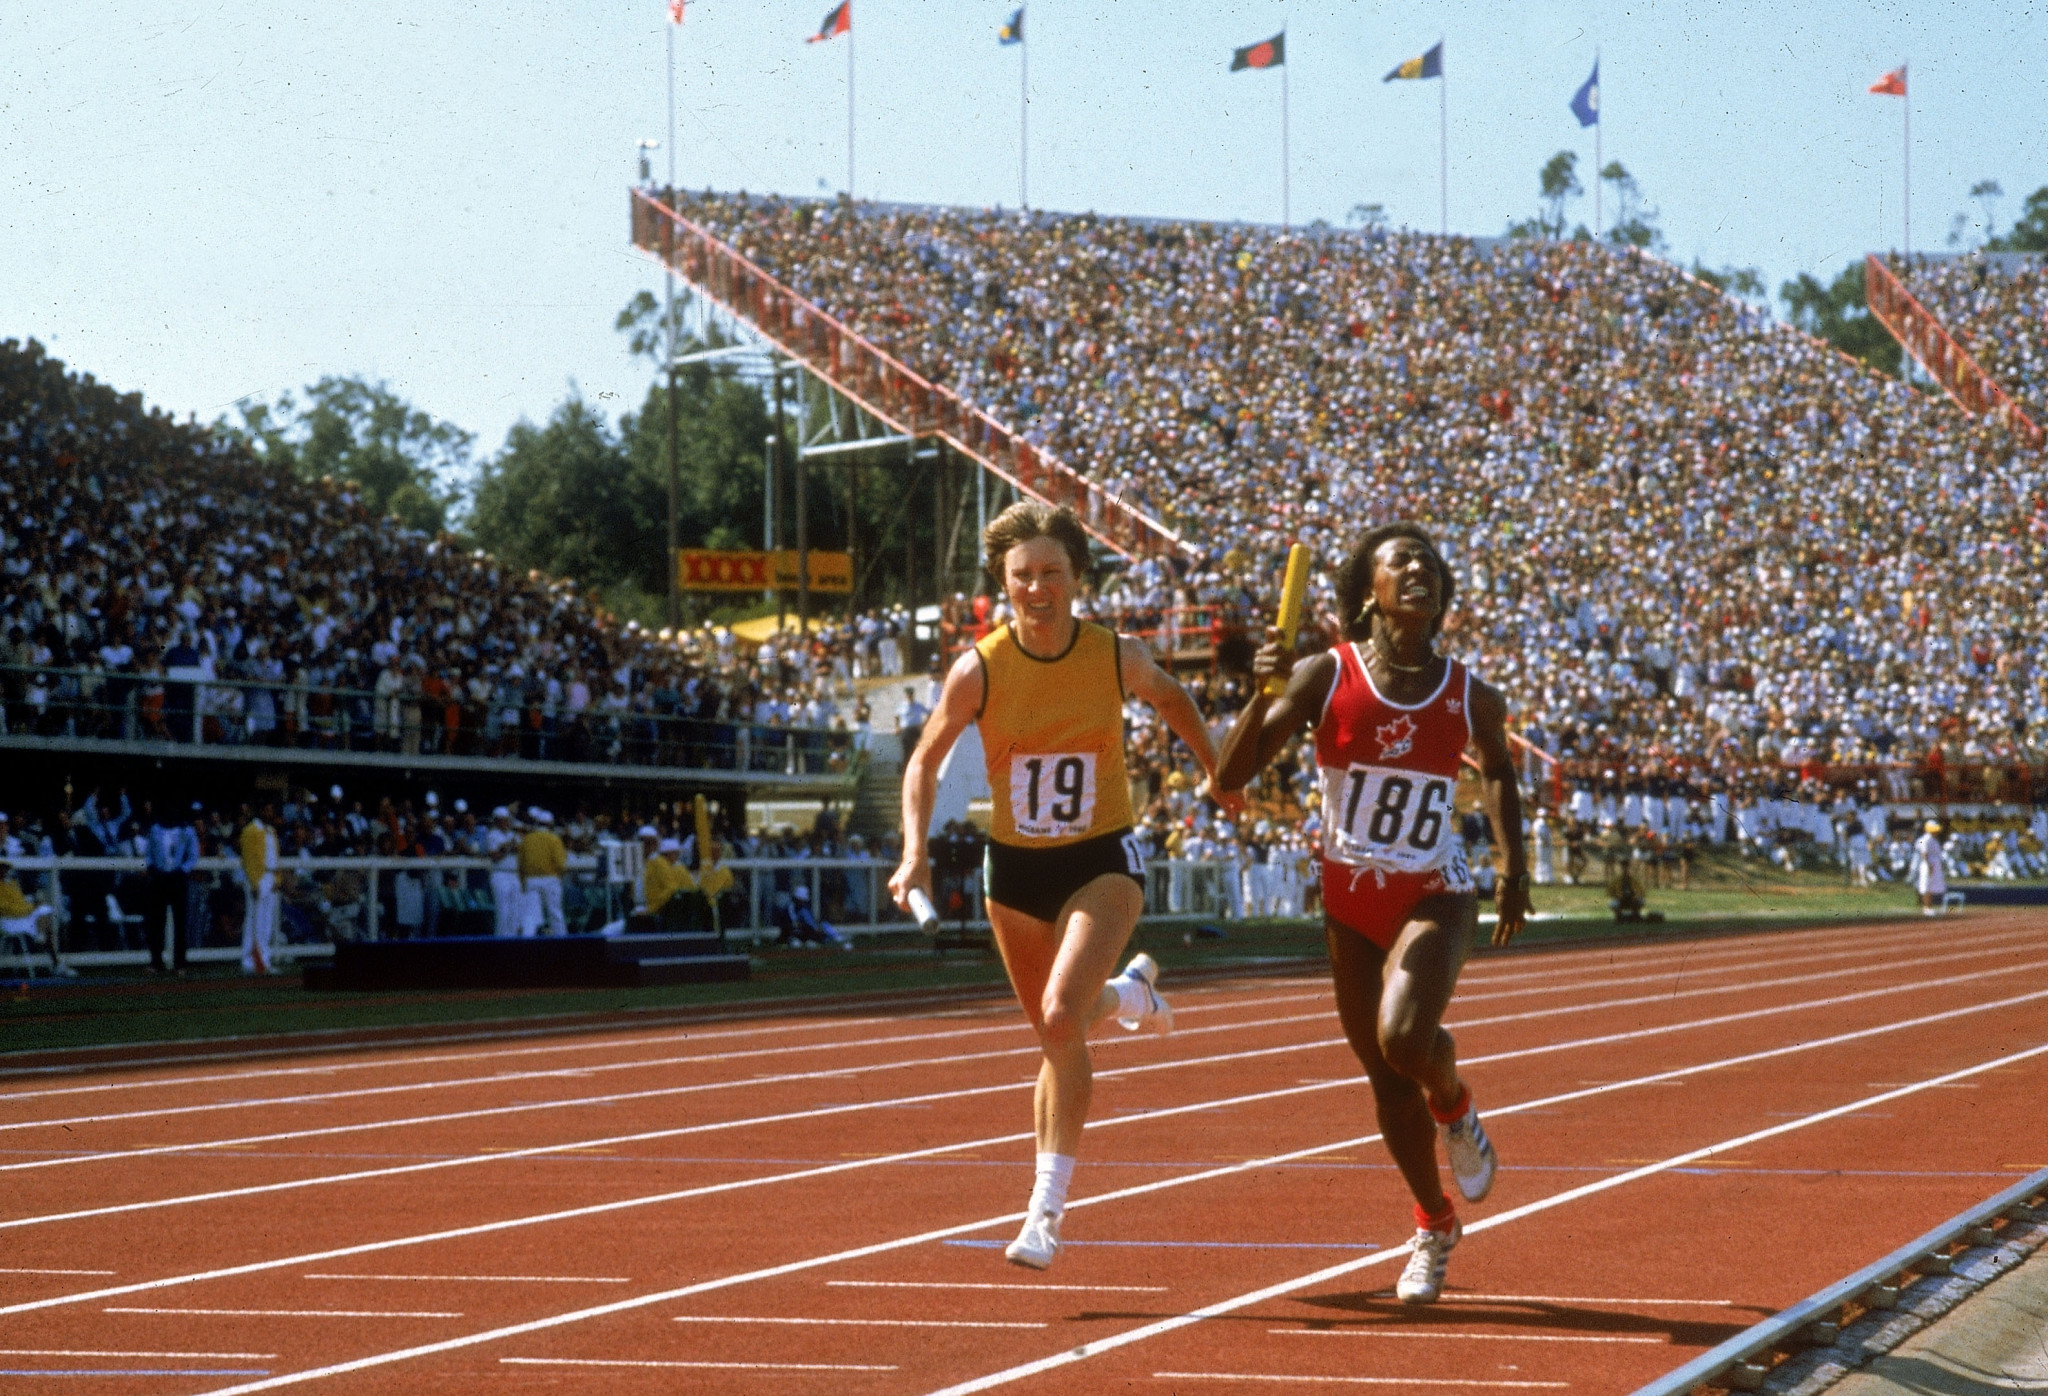 As part of Brisbane's bid for the 2032 Olympics, it pledged to use the QEII Stadium, which hosted athletics at the 1982 Commonwealth Games, as one of the venues ©Getty Images